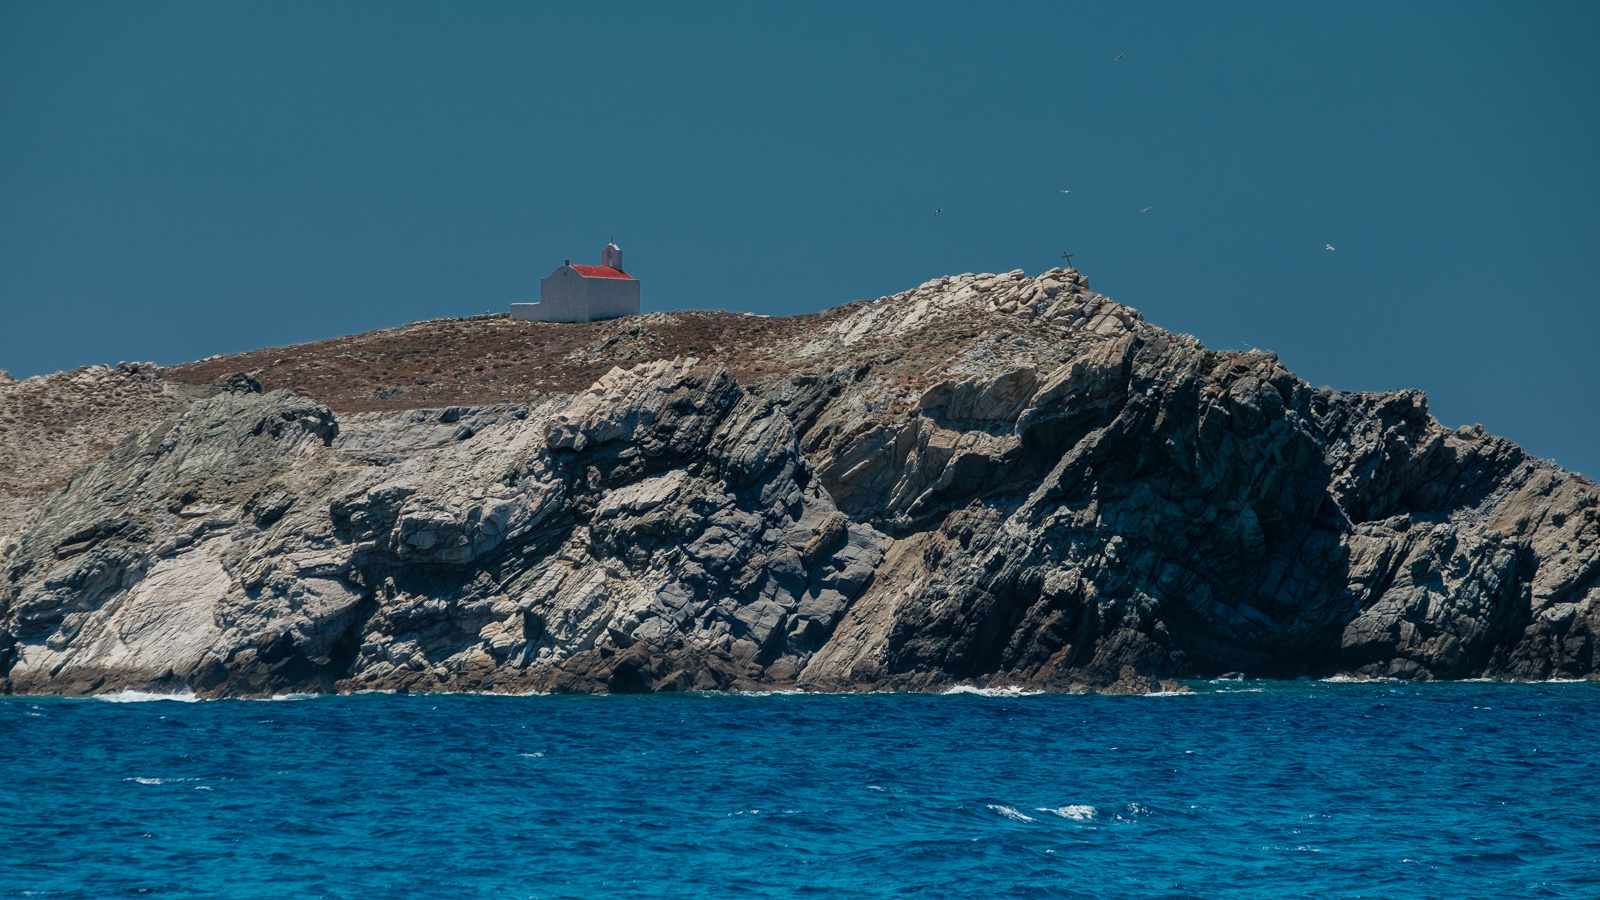 Church of St George, Mpaos (Μπάος) island